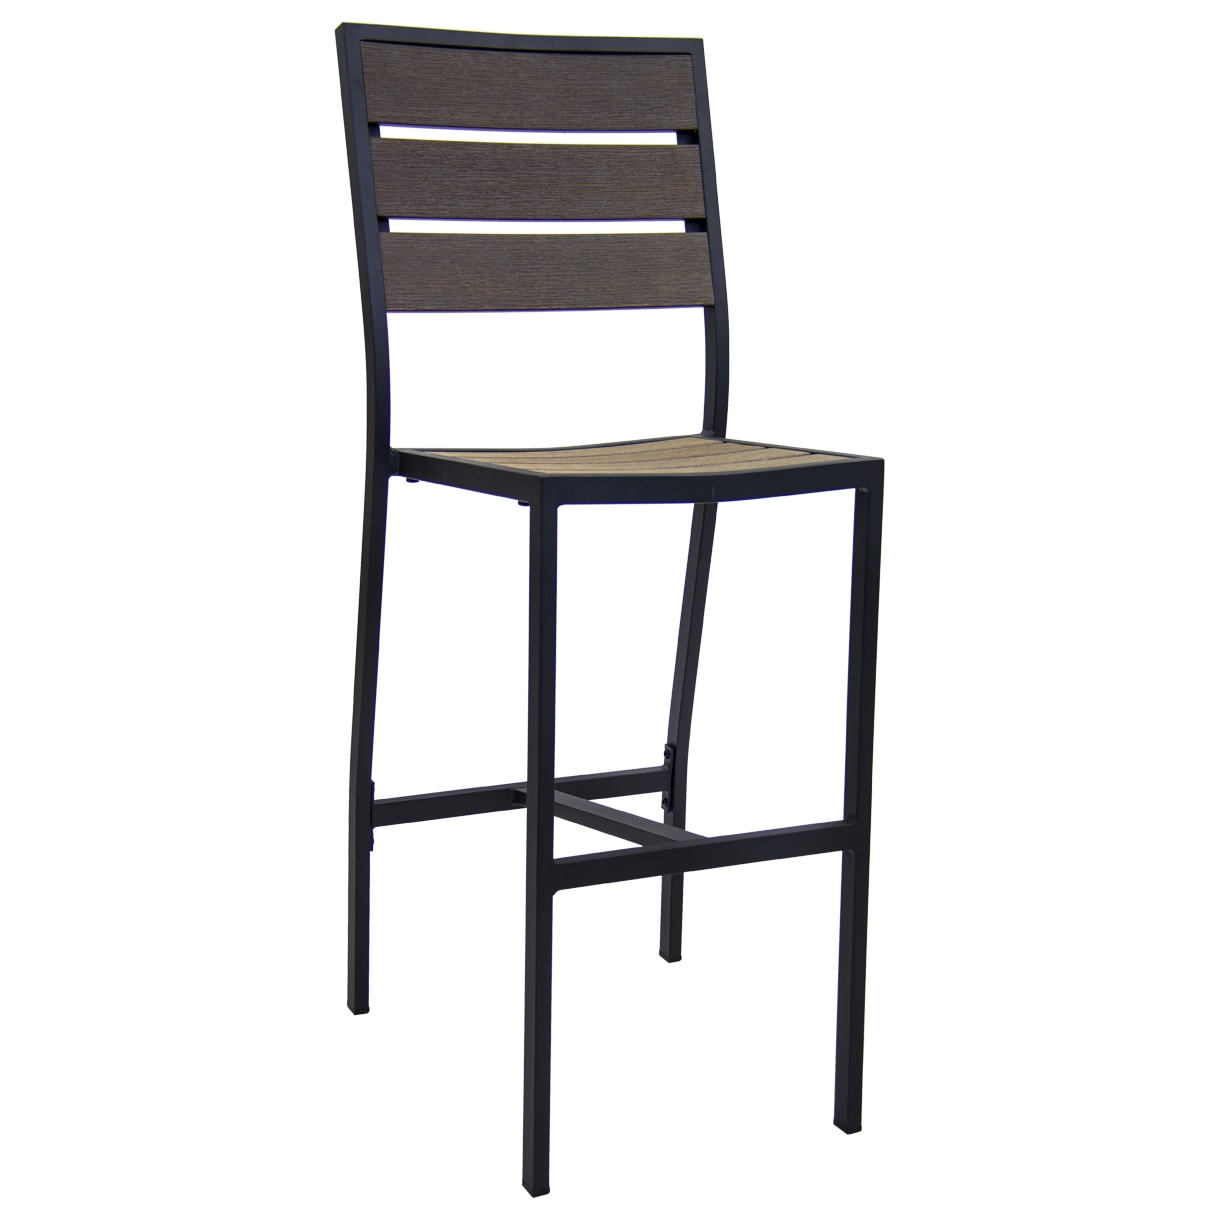 Black Aluminum Bar Stool with Dark Walnut Plastic Teak